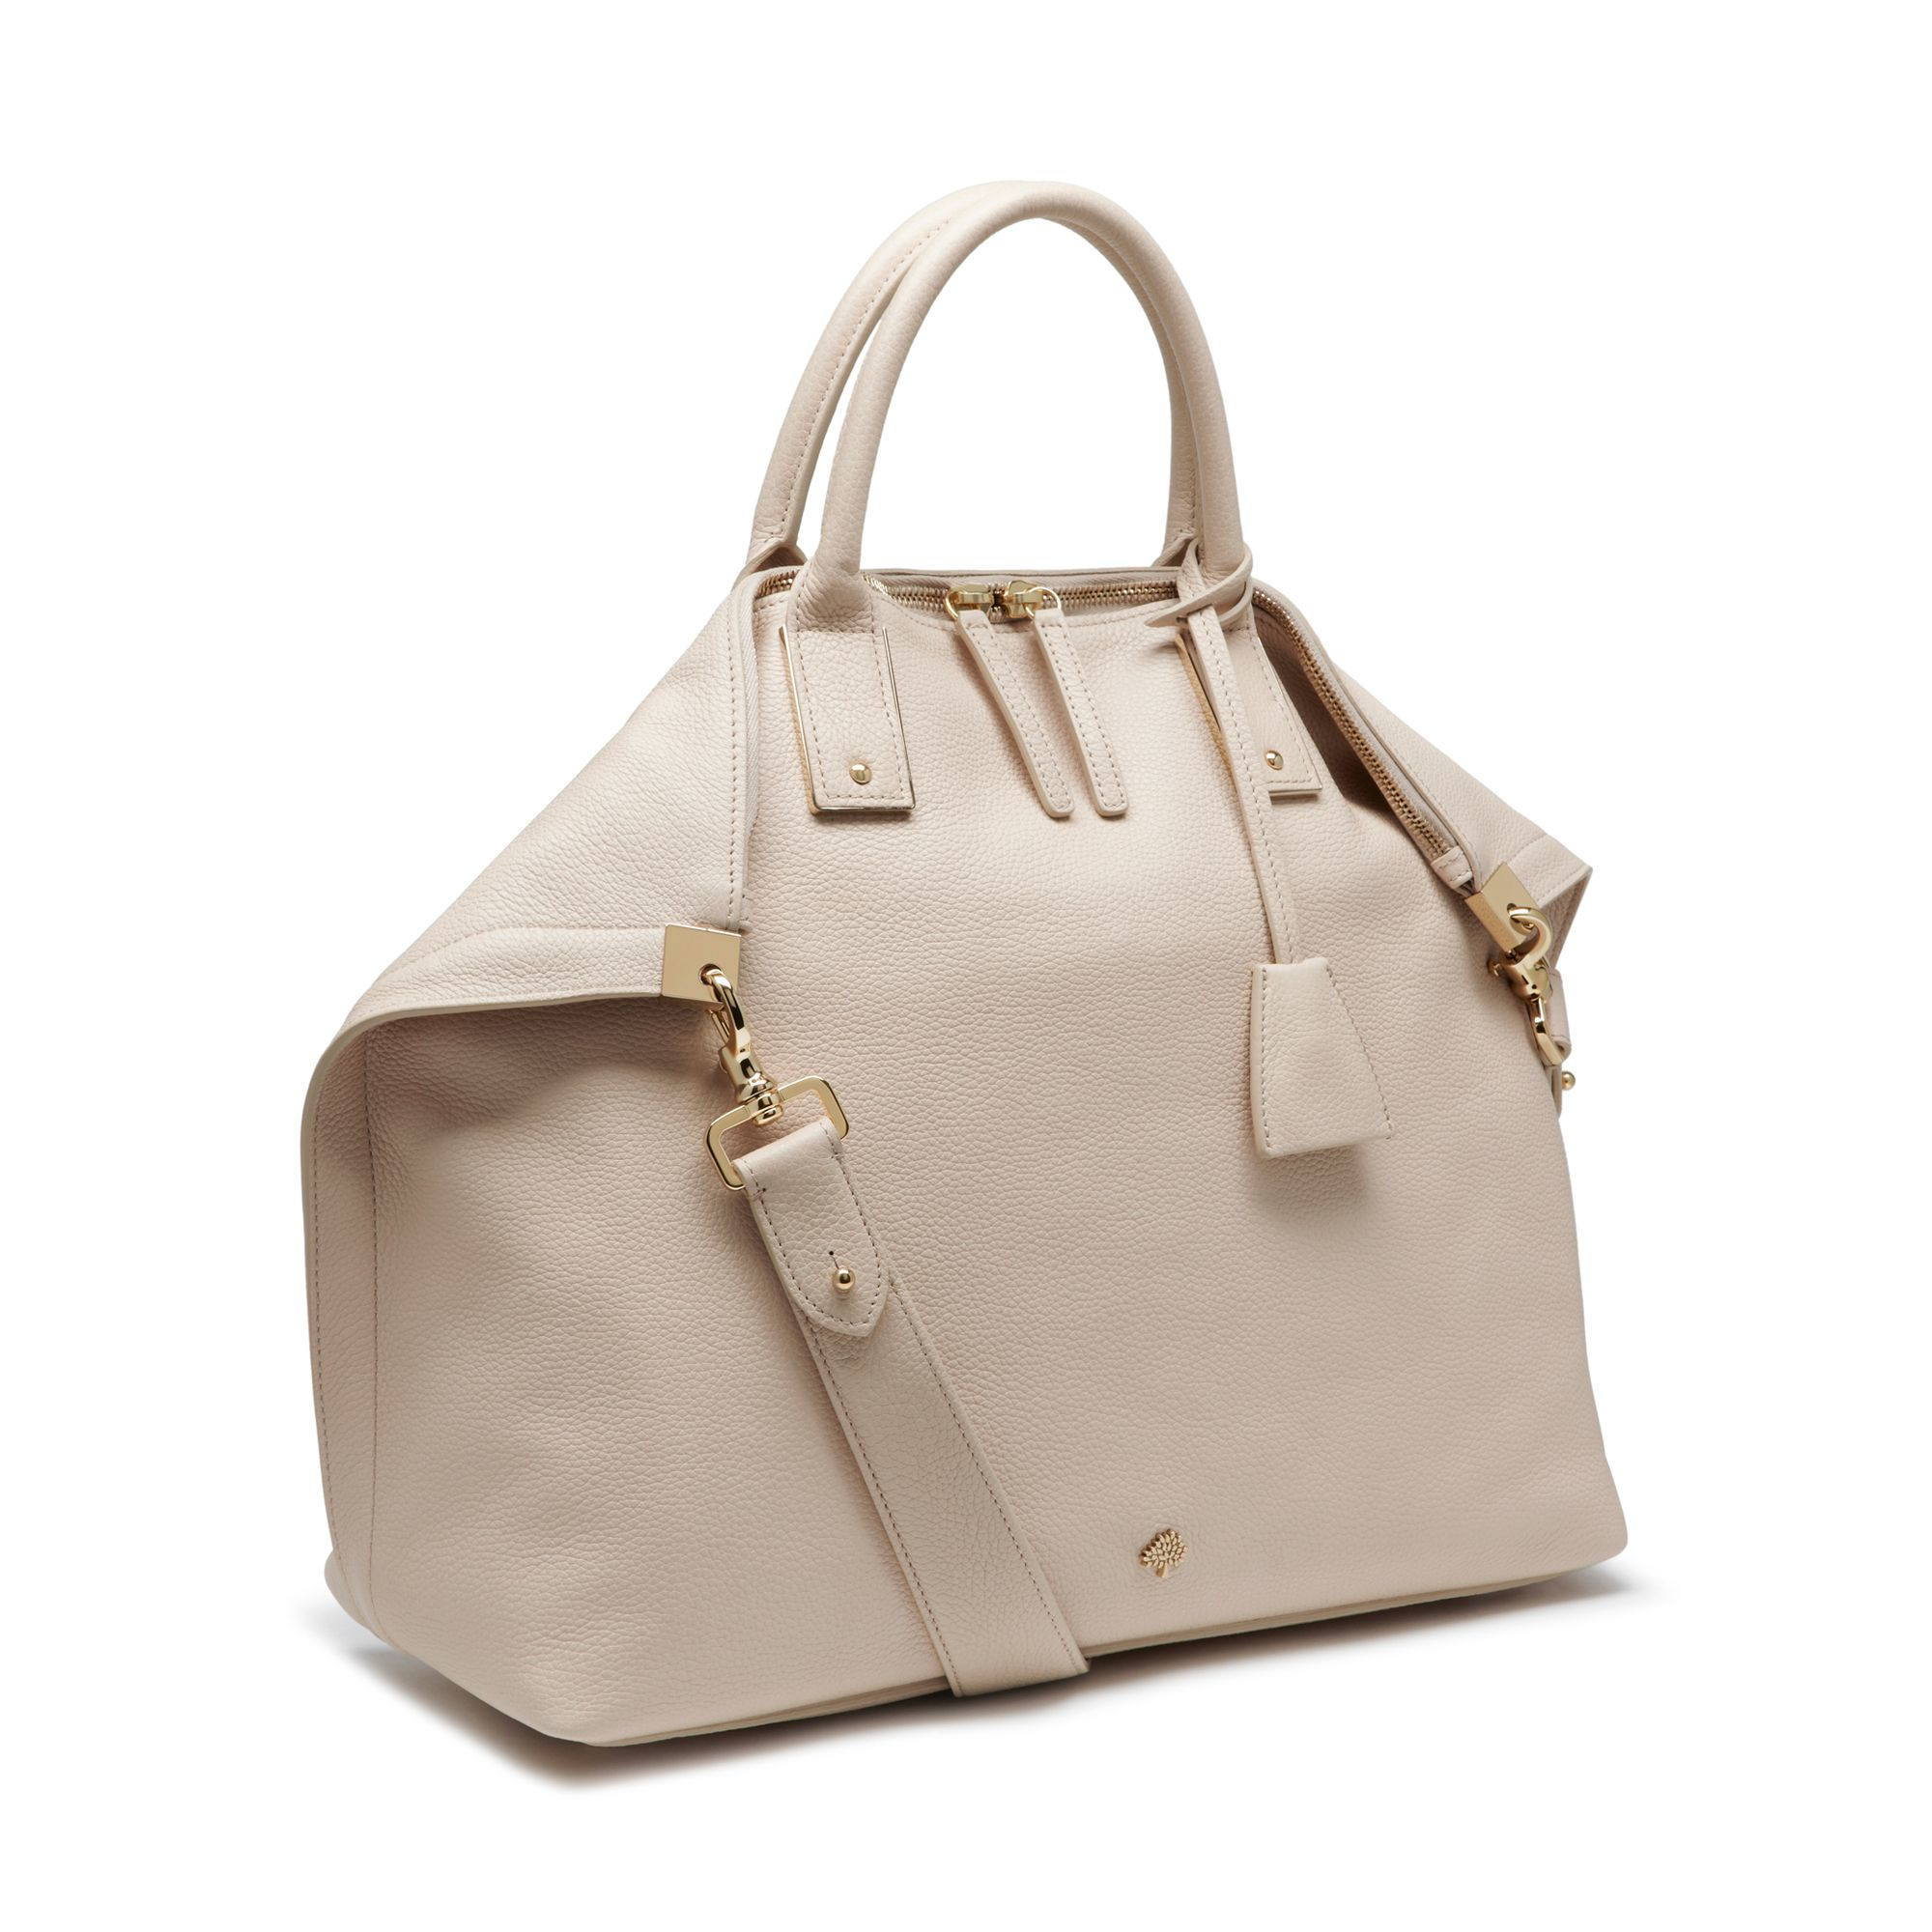 Lyst - Mulberry Alice Zipped Leather Tote in Natural 0648337db2805